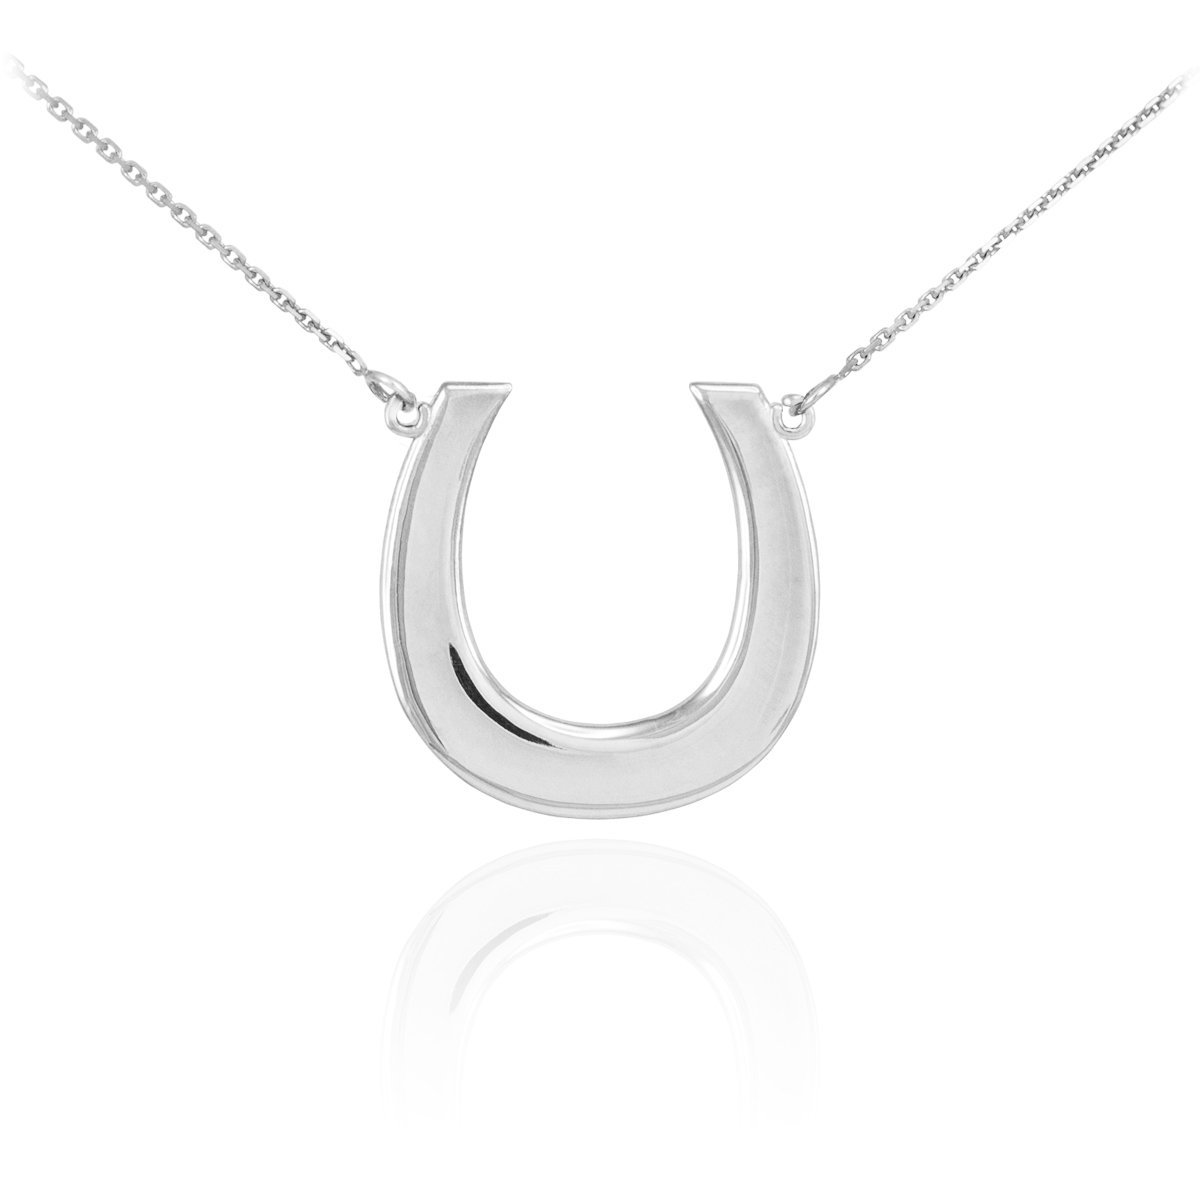 Amazon 925 sterling silver lucky horseshoe pendant necklace 16 amazon 925 sterling silver lucky horseshoe pendant necklace 16 jewelry mozeypictures Gallery